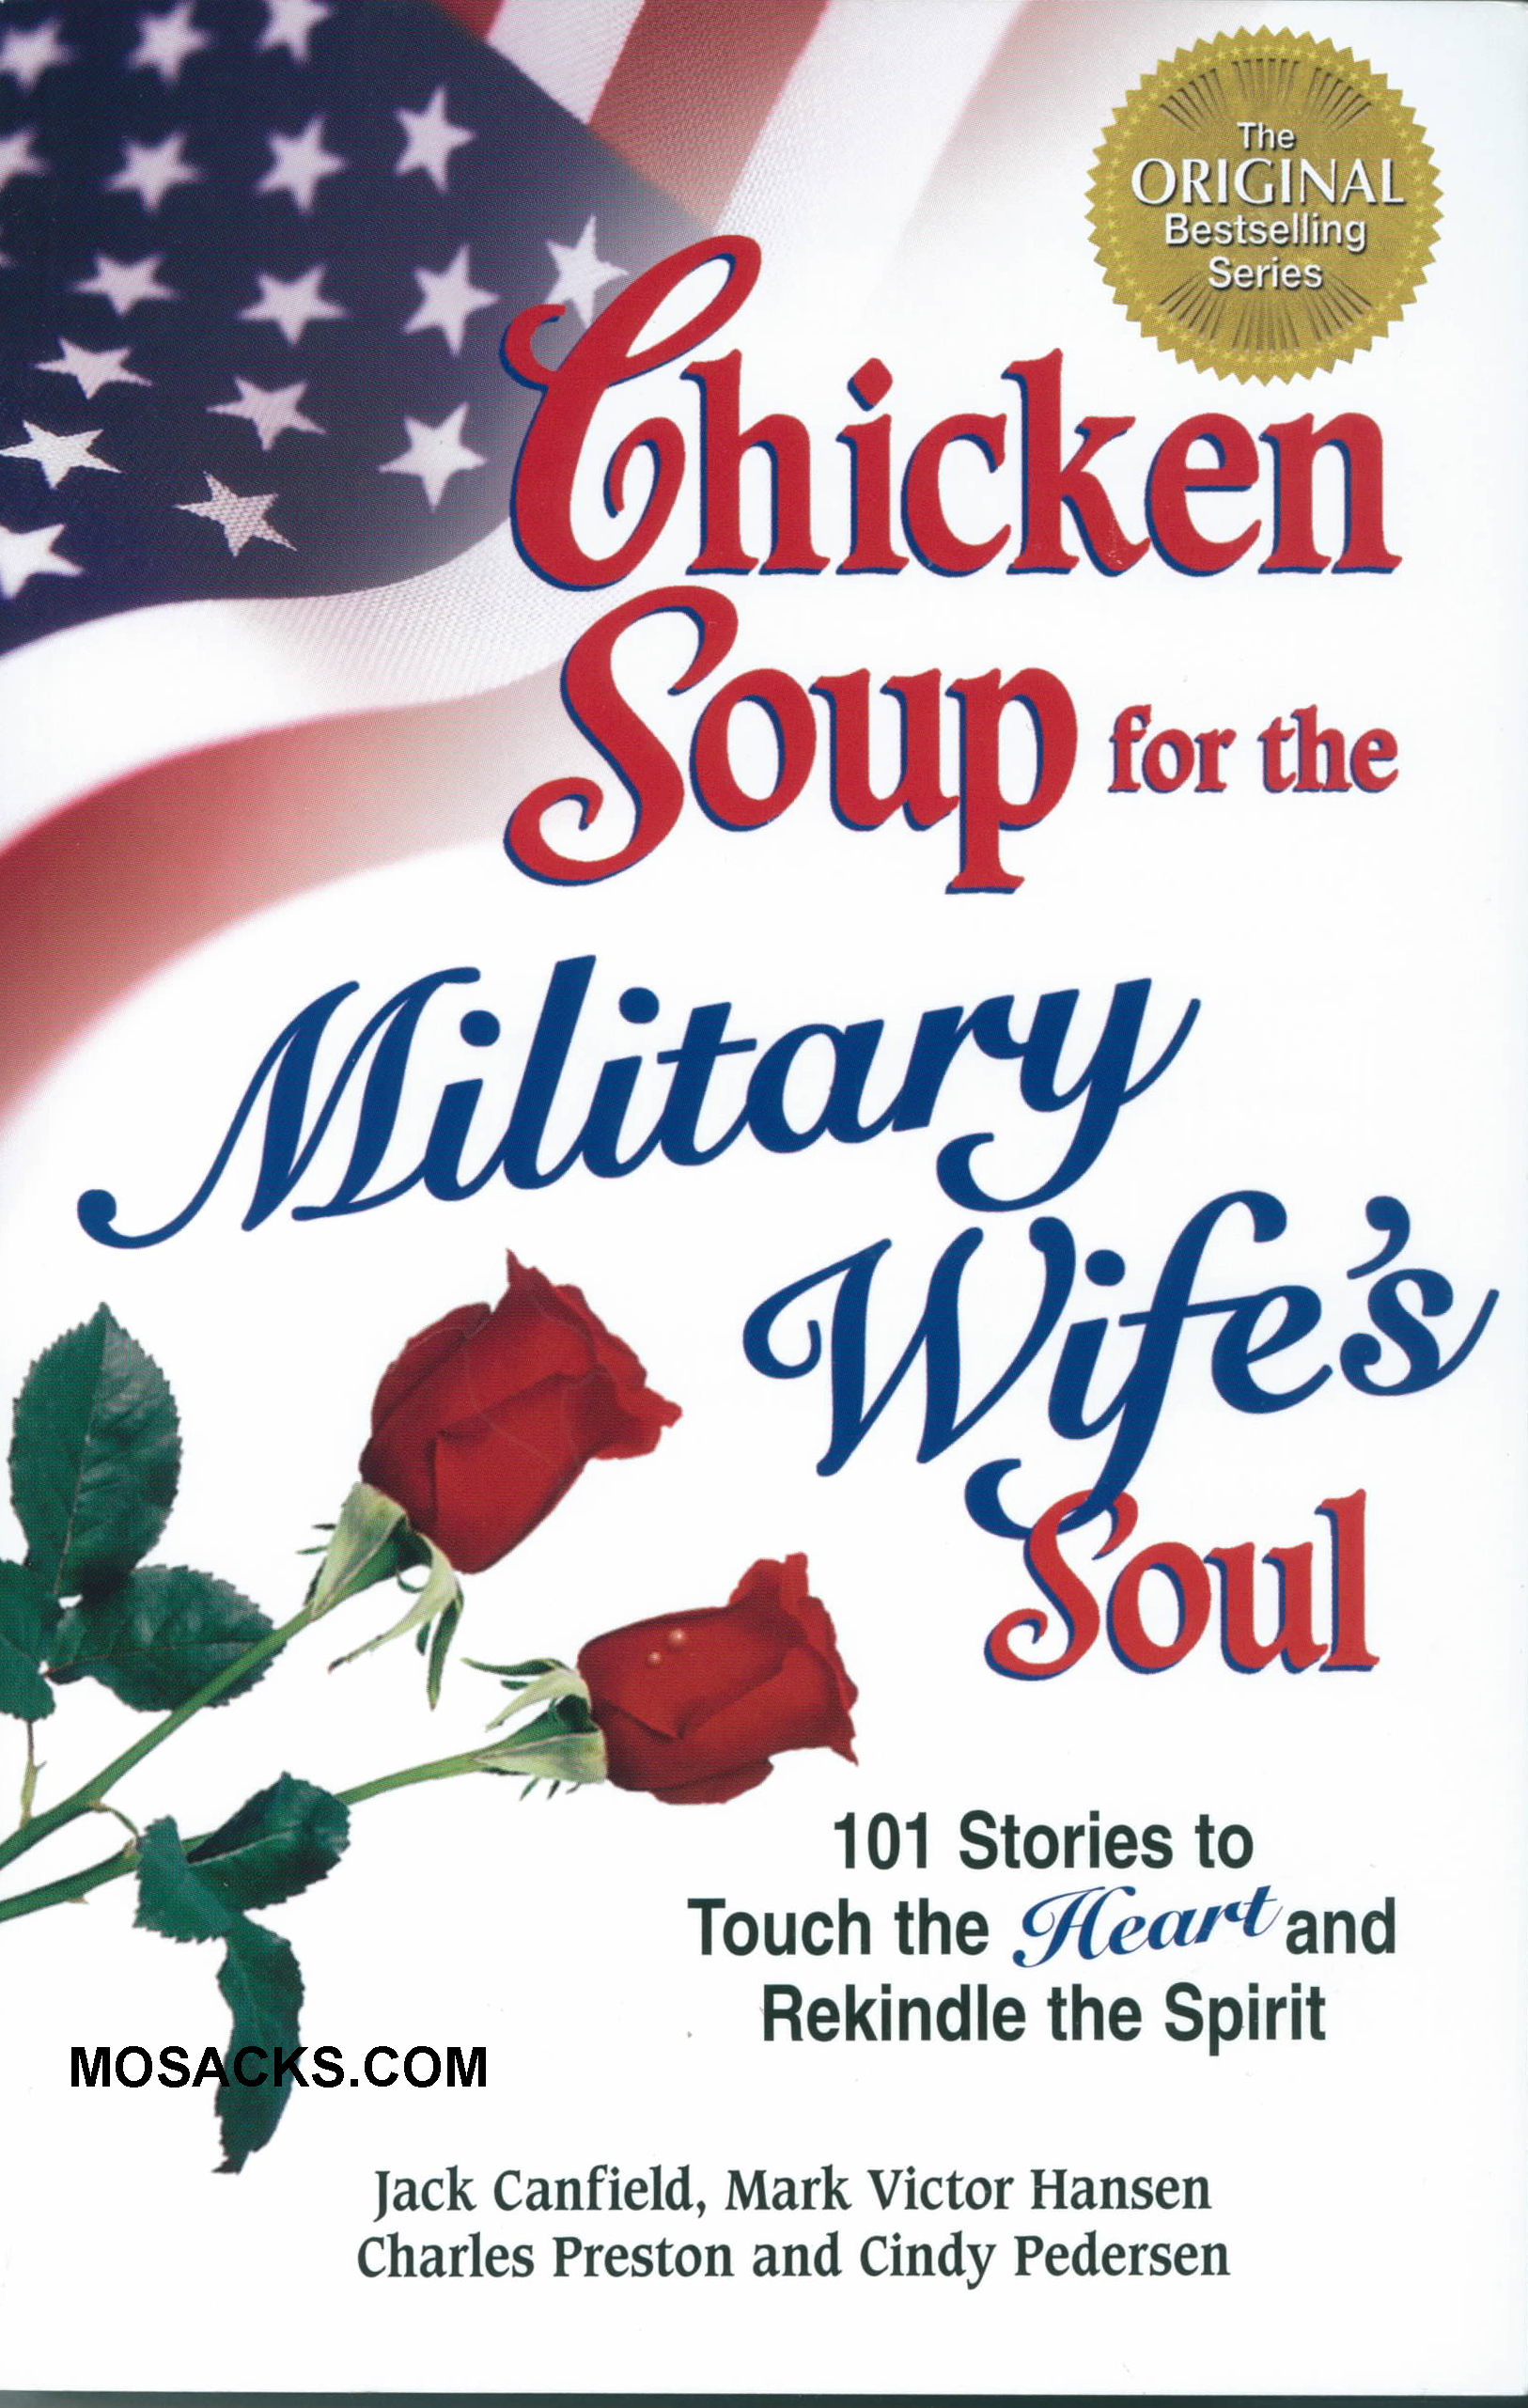 Chicken Soup for the Military Wife Soul by Jack Canfield 108-9780757302657